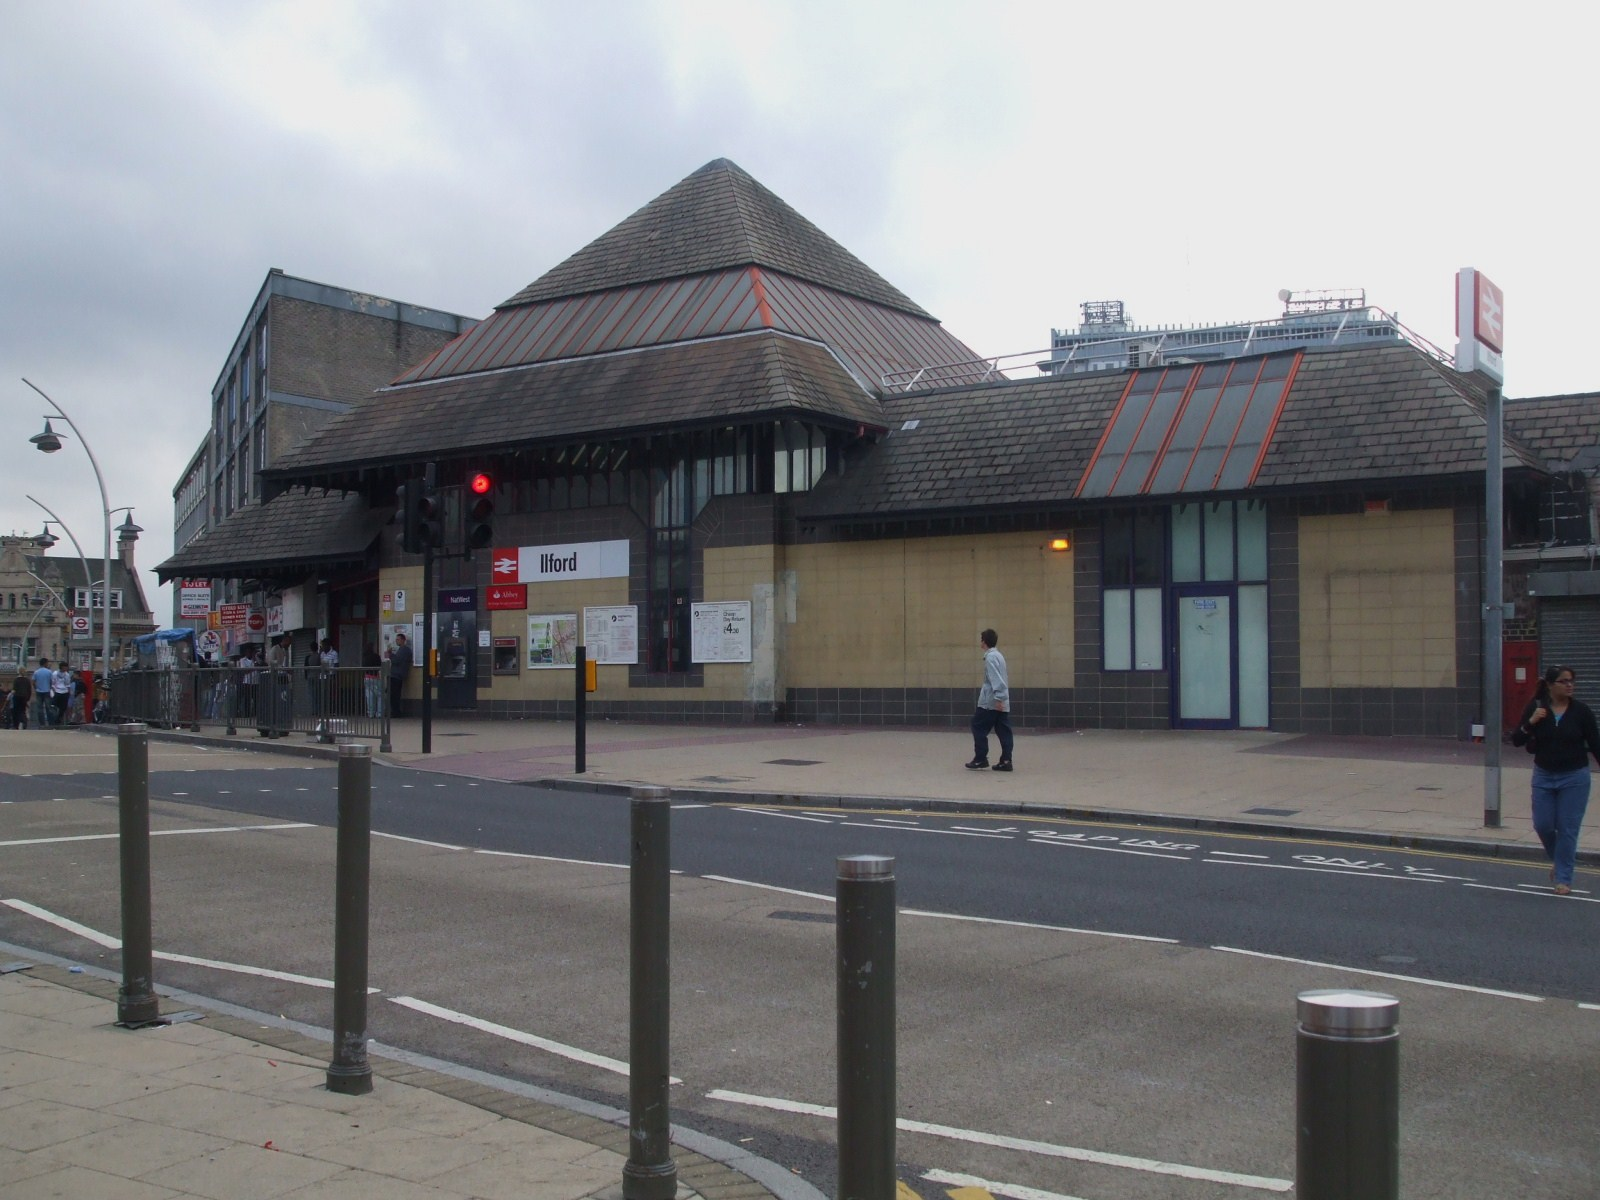 File:Ilford station building2.JPG - Wikipedia, the free encyclopedia